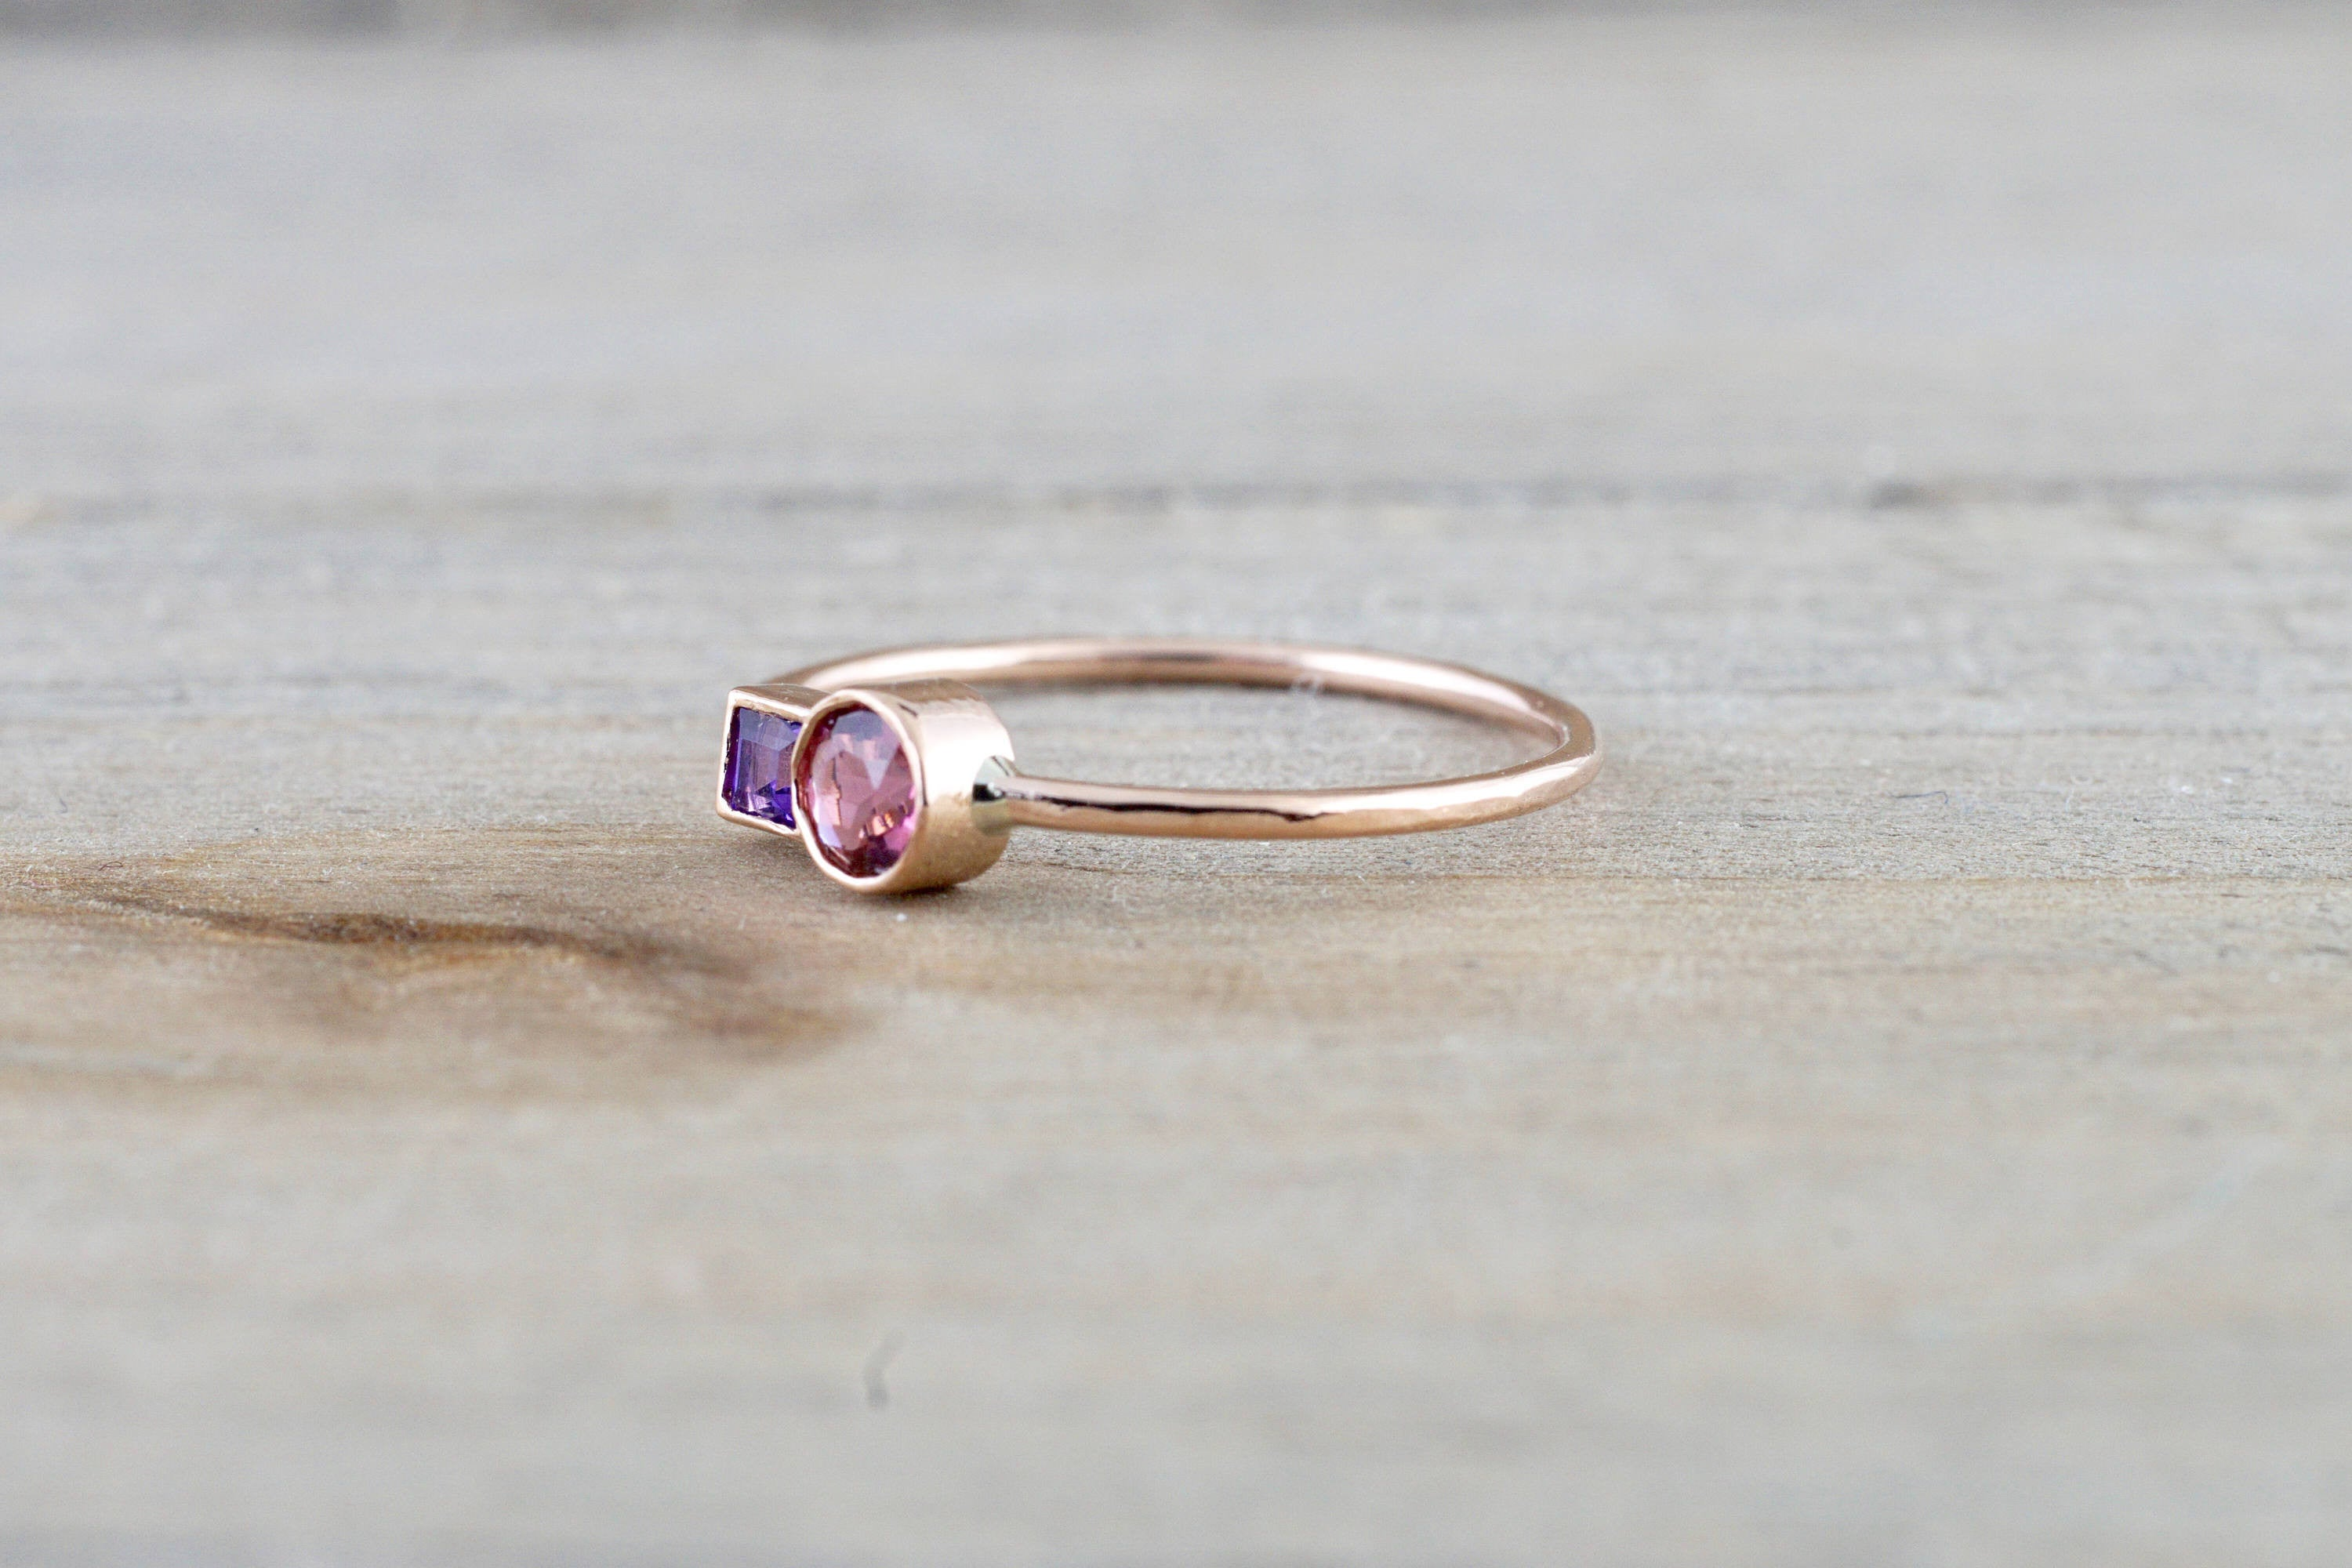 14k Rose Gold Pink Tourmaline Amethyst Ring Band Bezel Mothers Birthstone Gemstone Ring - Brilliant Facets